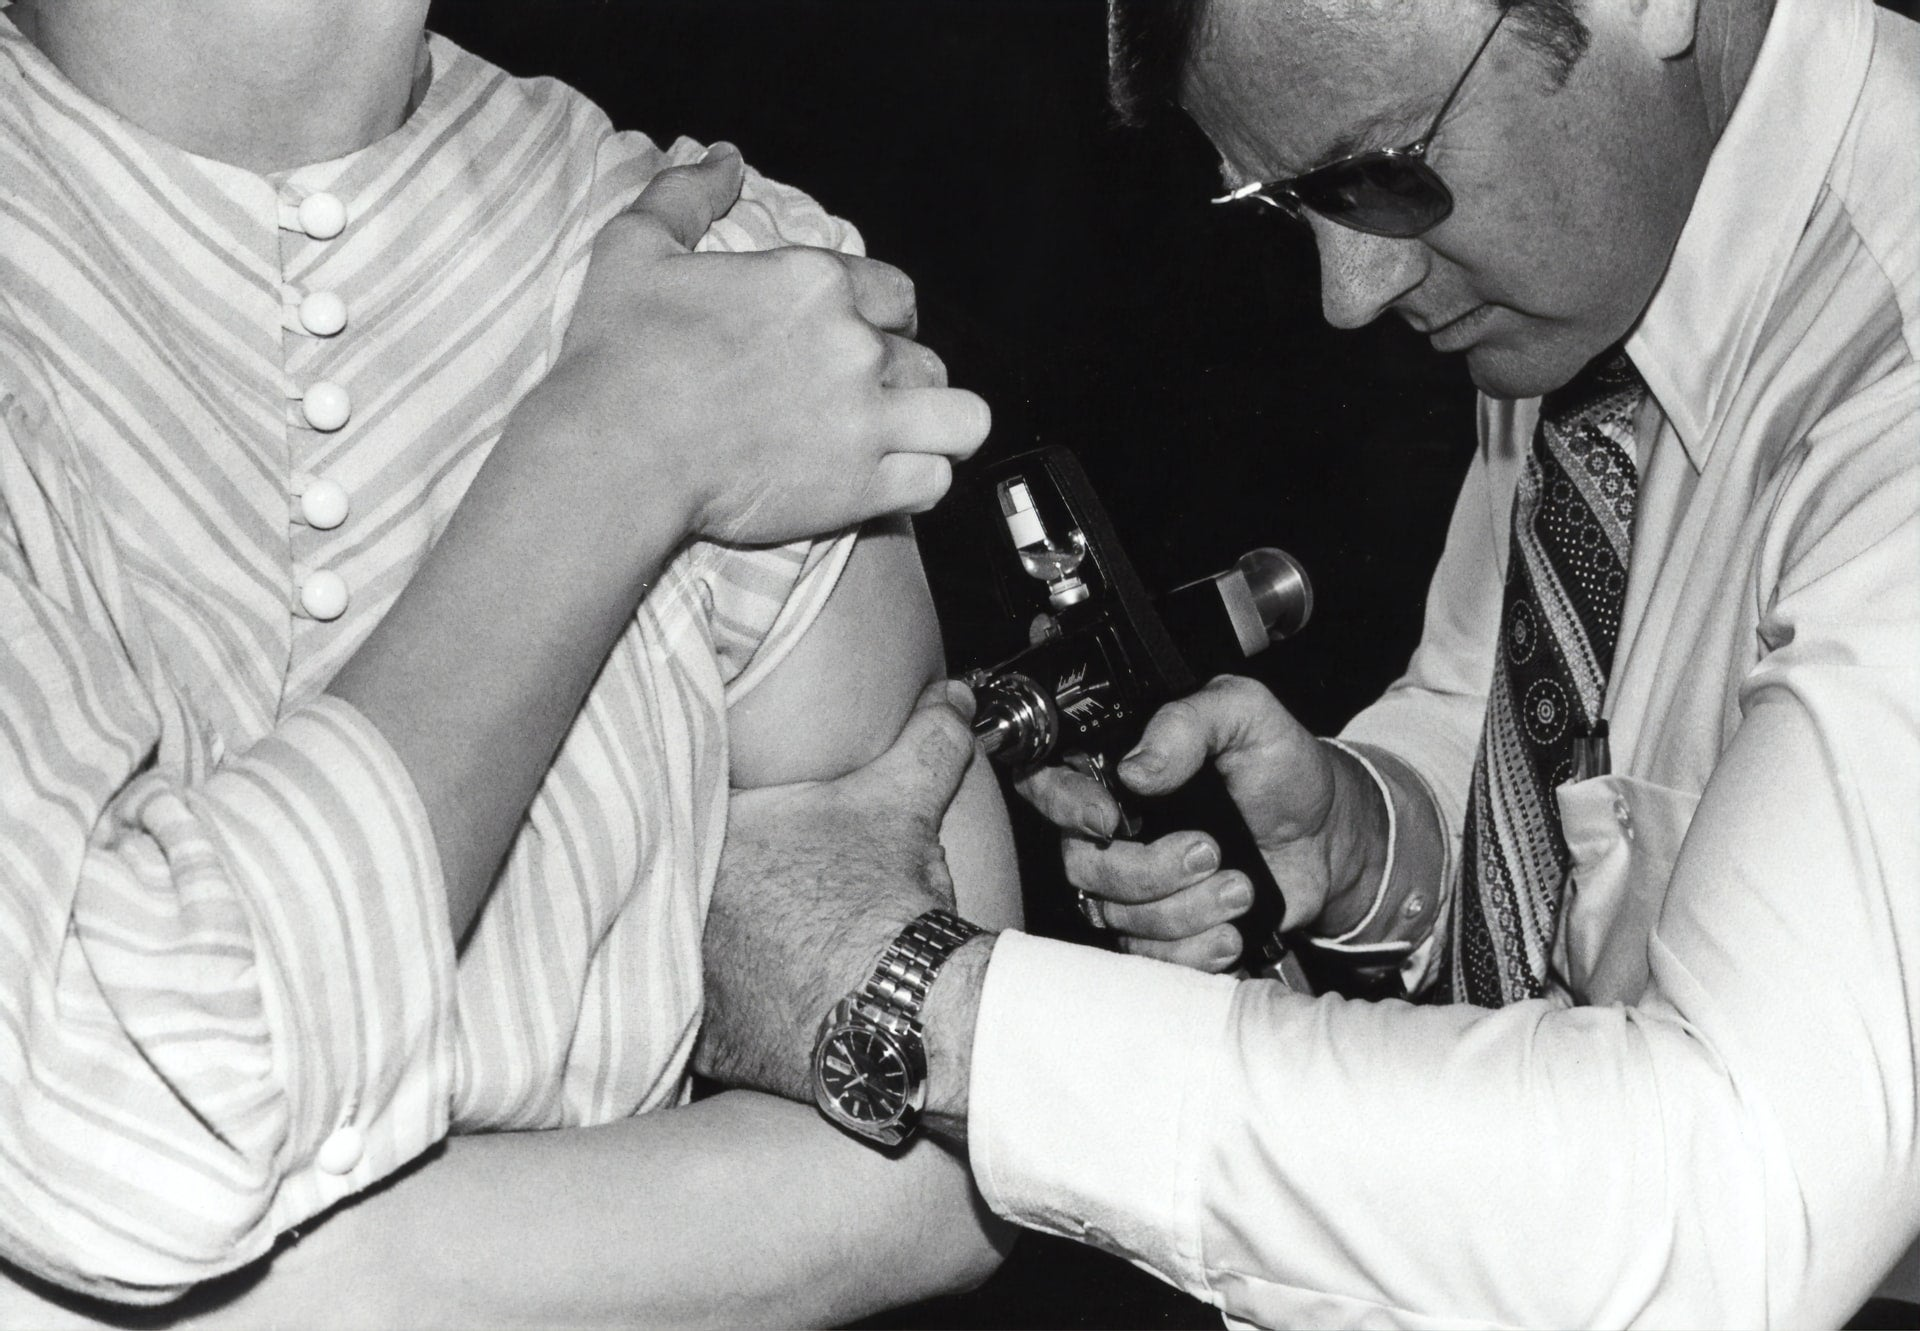 Black and white photo of a patient getting a swine flu vaccine through a jet injector in 1976